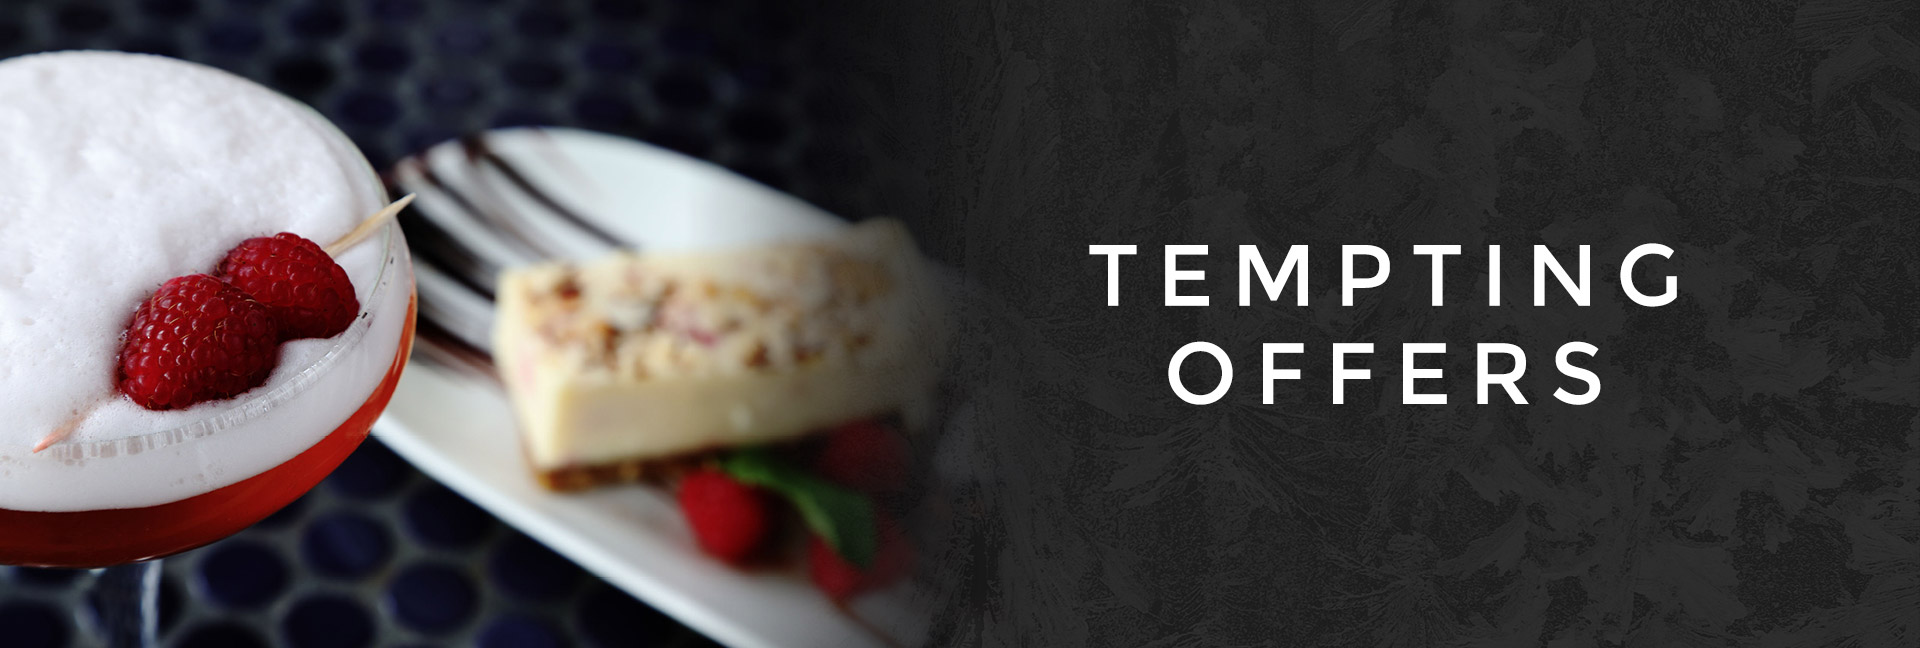 Temping offers at All Bar One The O2